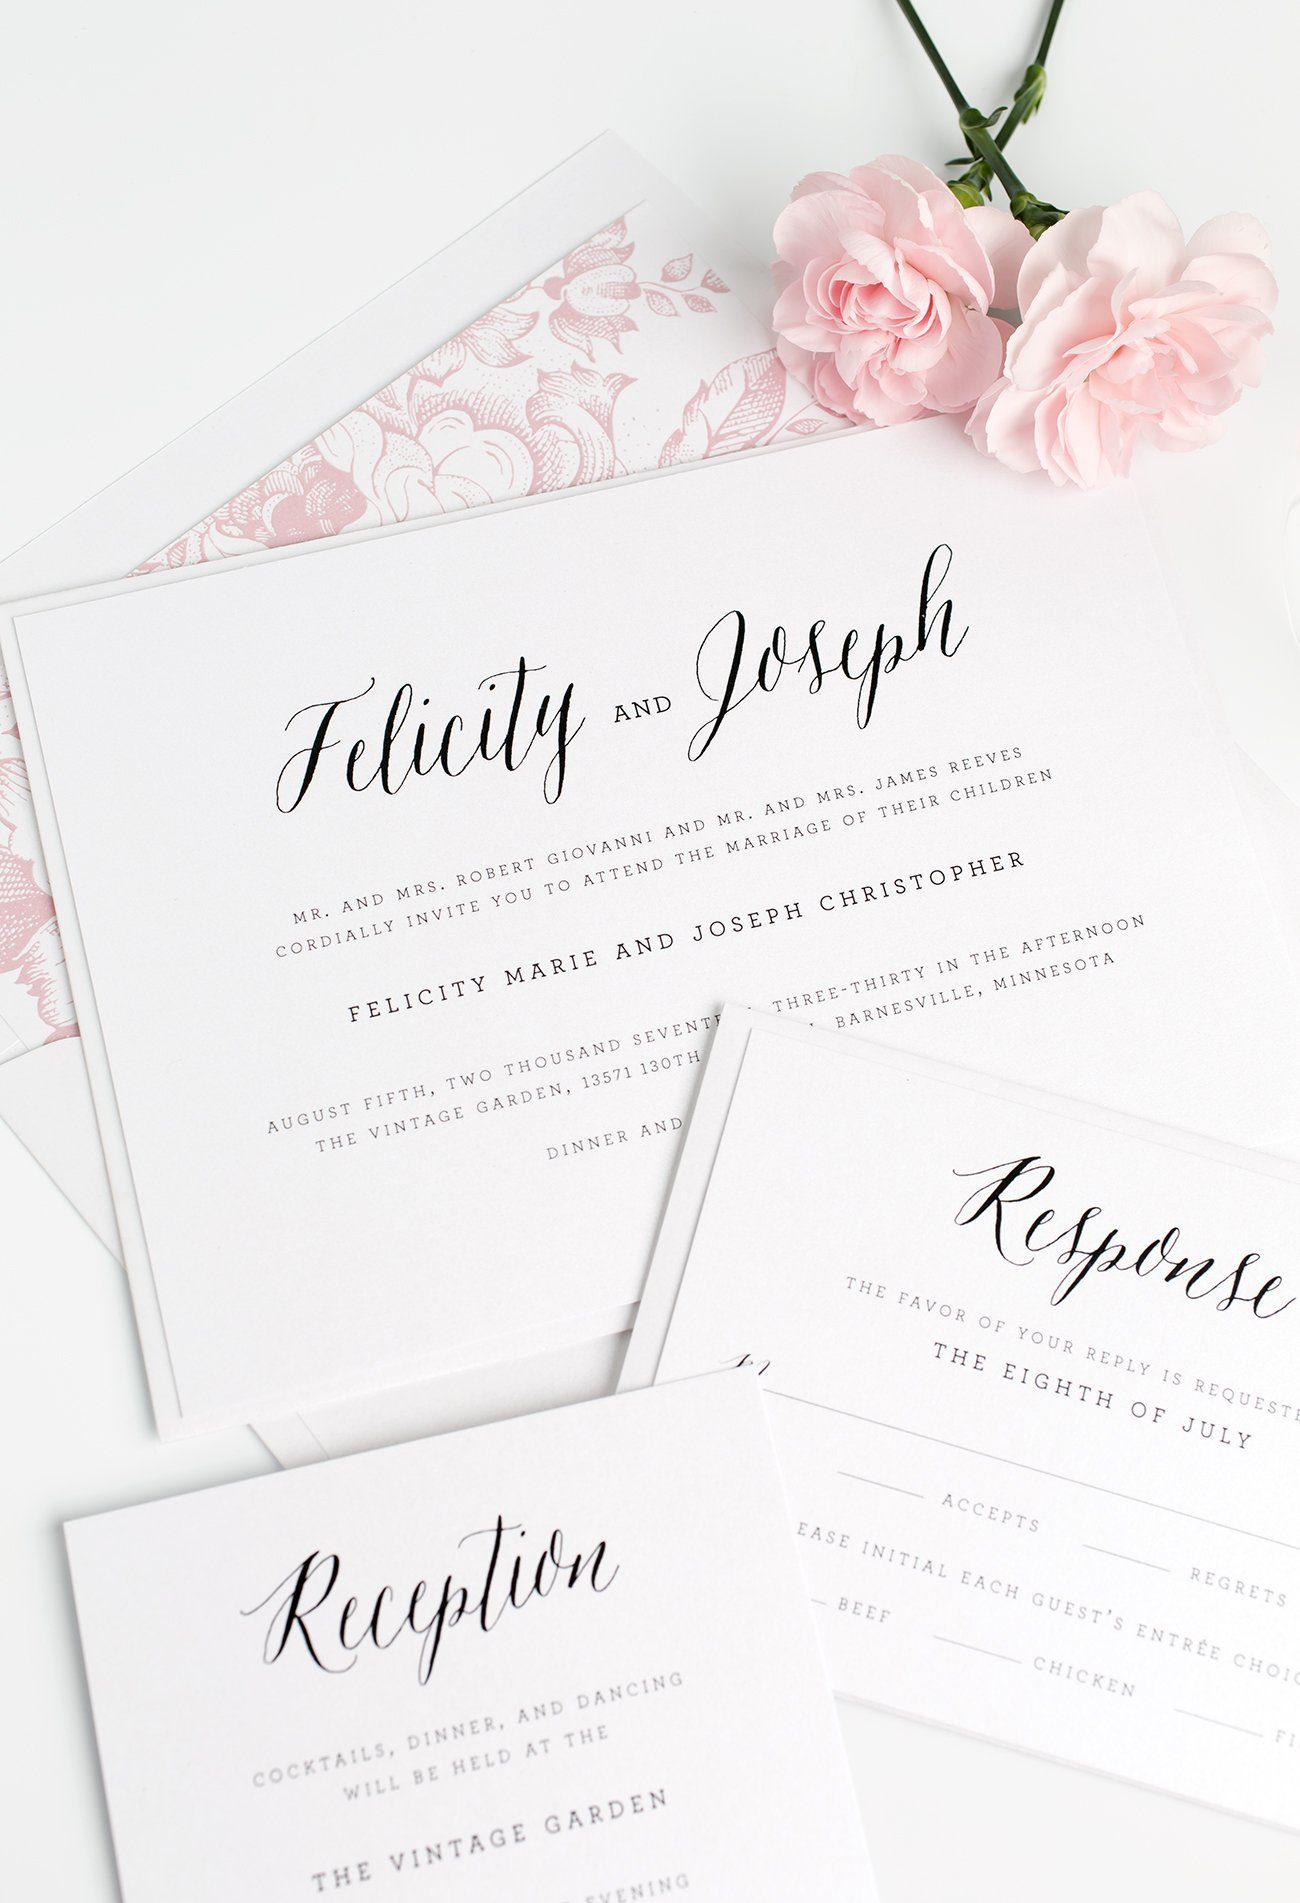 Rustic Floral Wedding Invitations In Pink Wedding Invitations